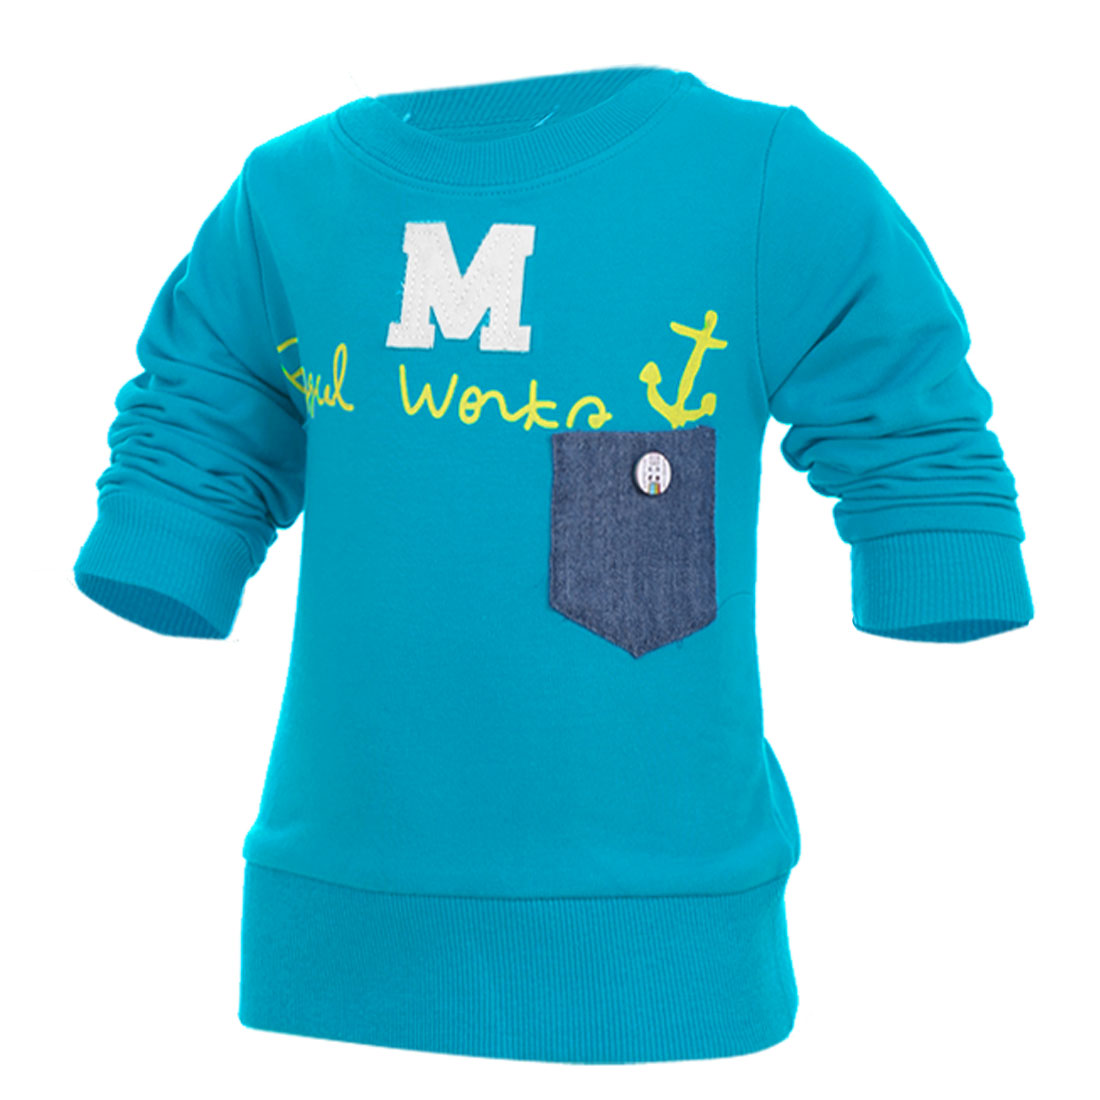 Child Leisure Letter Pattern Pocket Decor Stretchy Blue Pullover Tee 3T